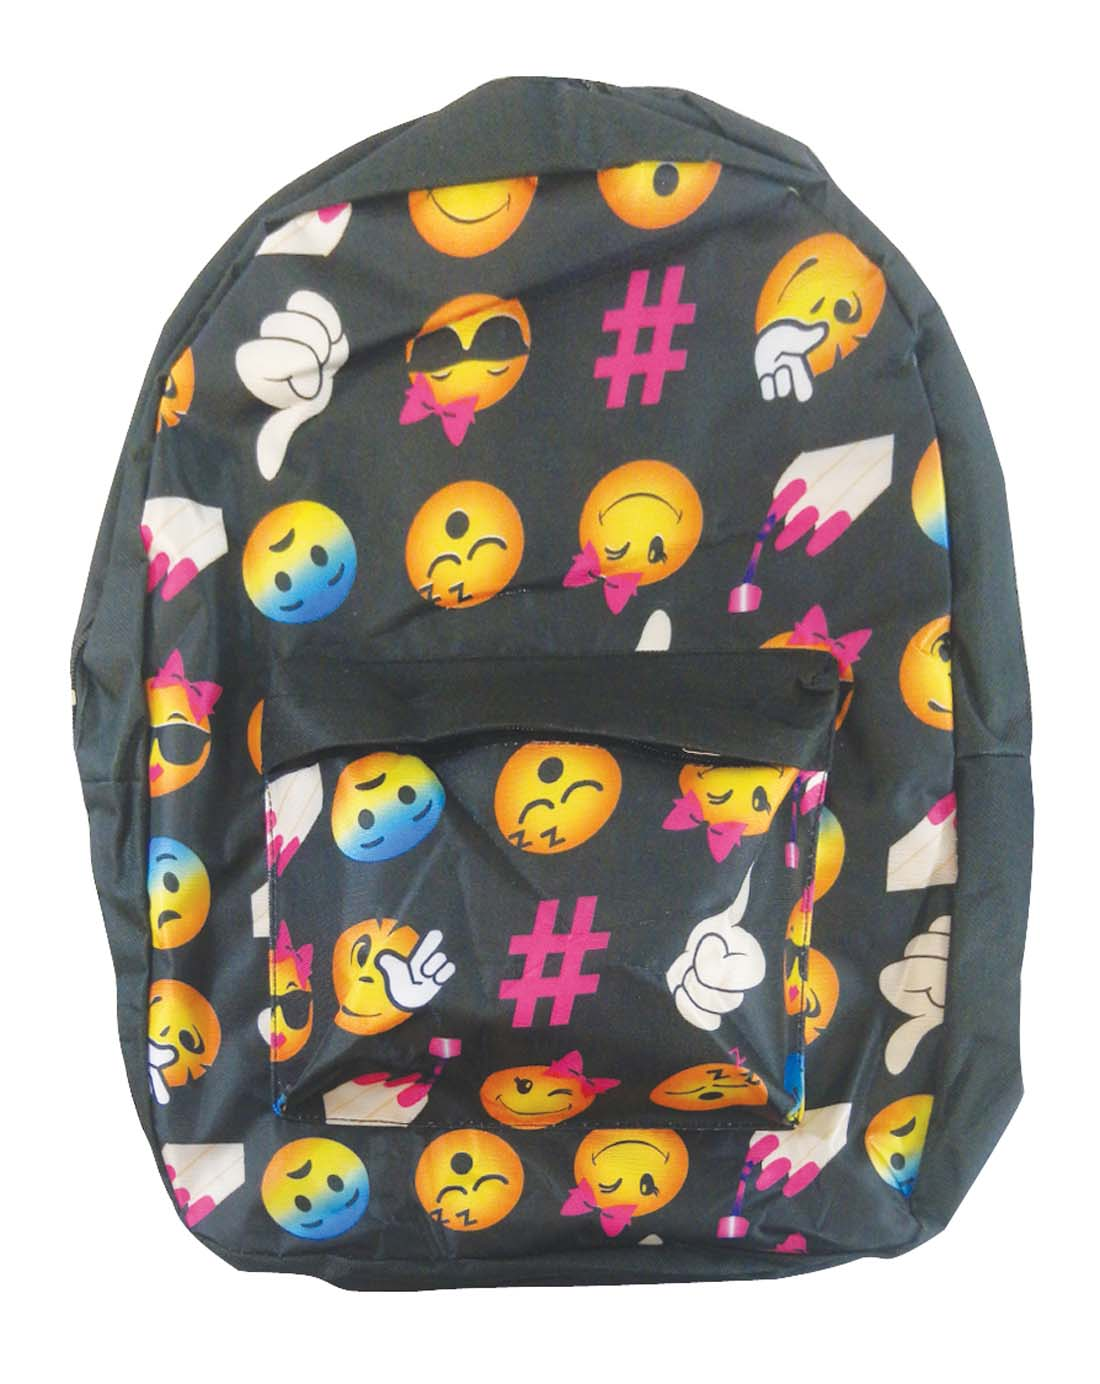 View PRIDE BACK PACK 16X12X6 INCHES EXPRESSION FACE DESIGN